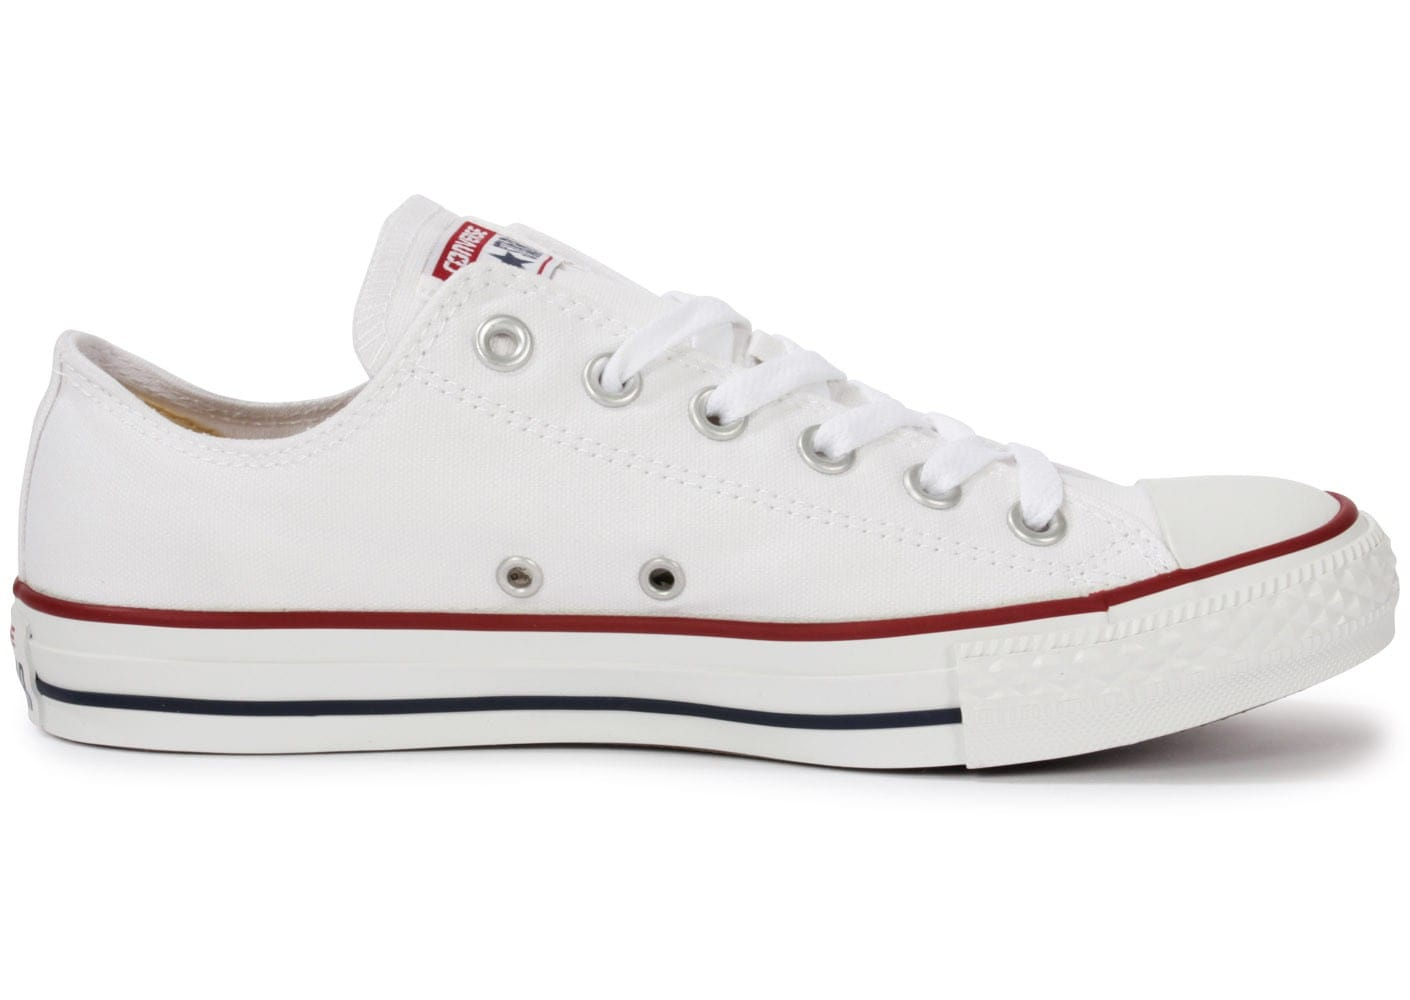 9f5b5e7255338 ... Chaussures Converse Chuck Taylor All Star low blanche vue dessous ...